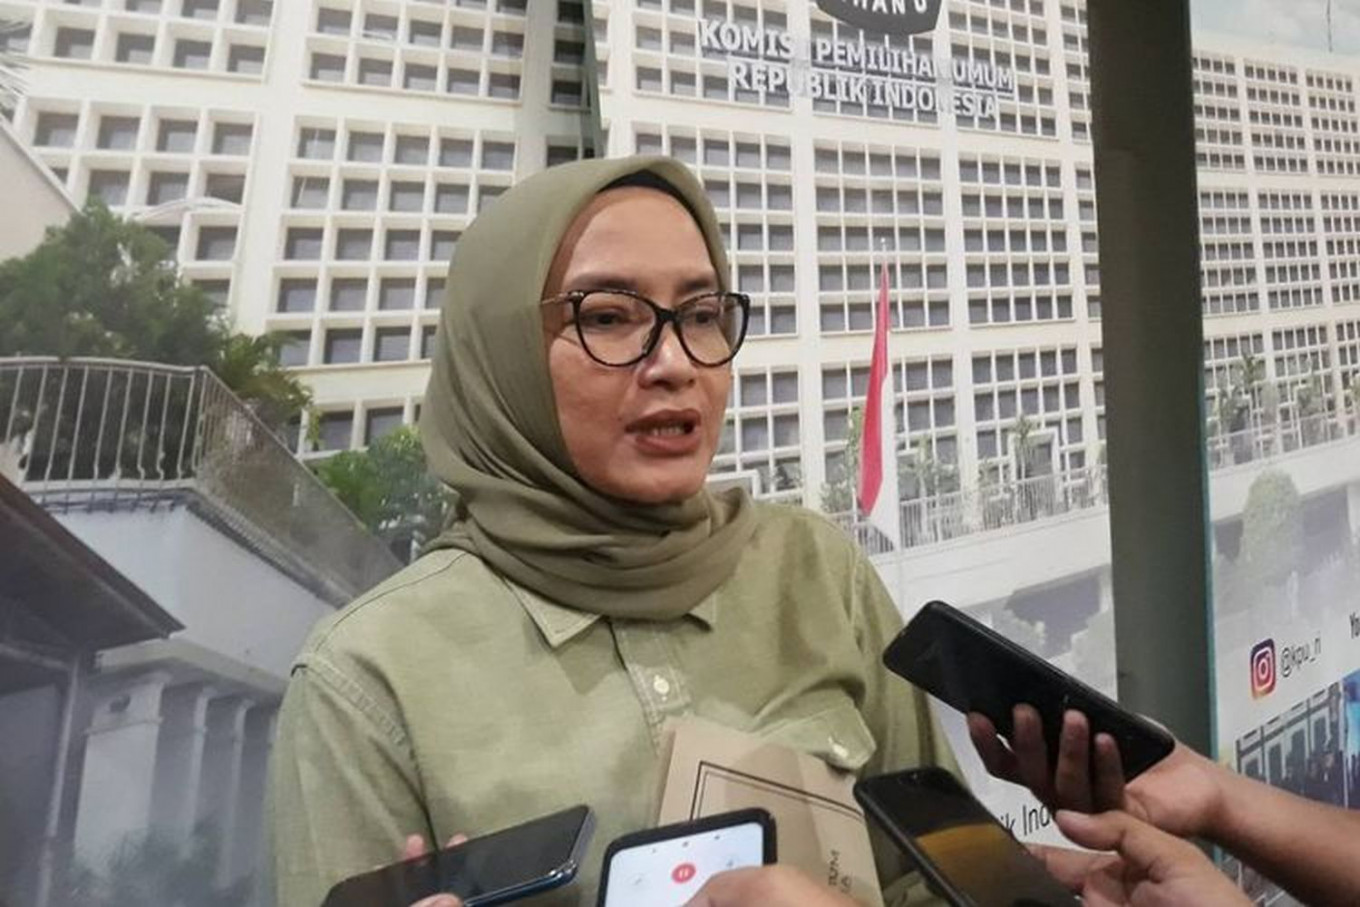 KPU commissioner Evi Novida dismissed for manipulating vote results in West Kalimantan